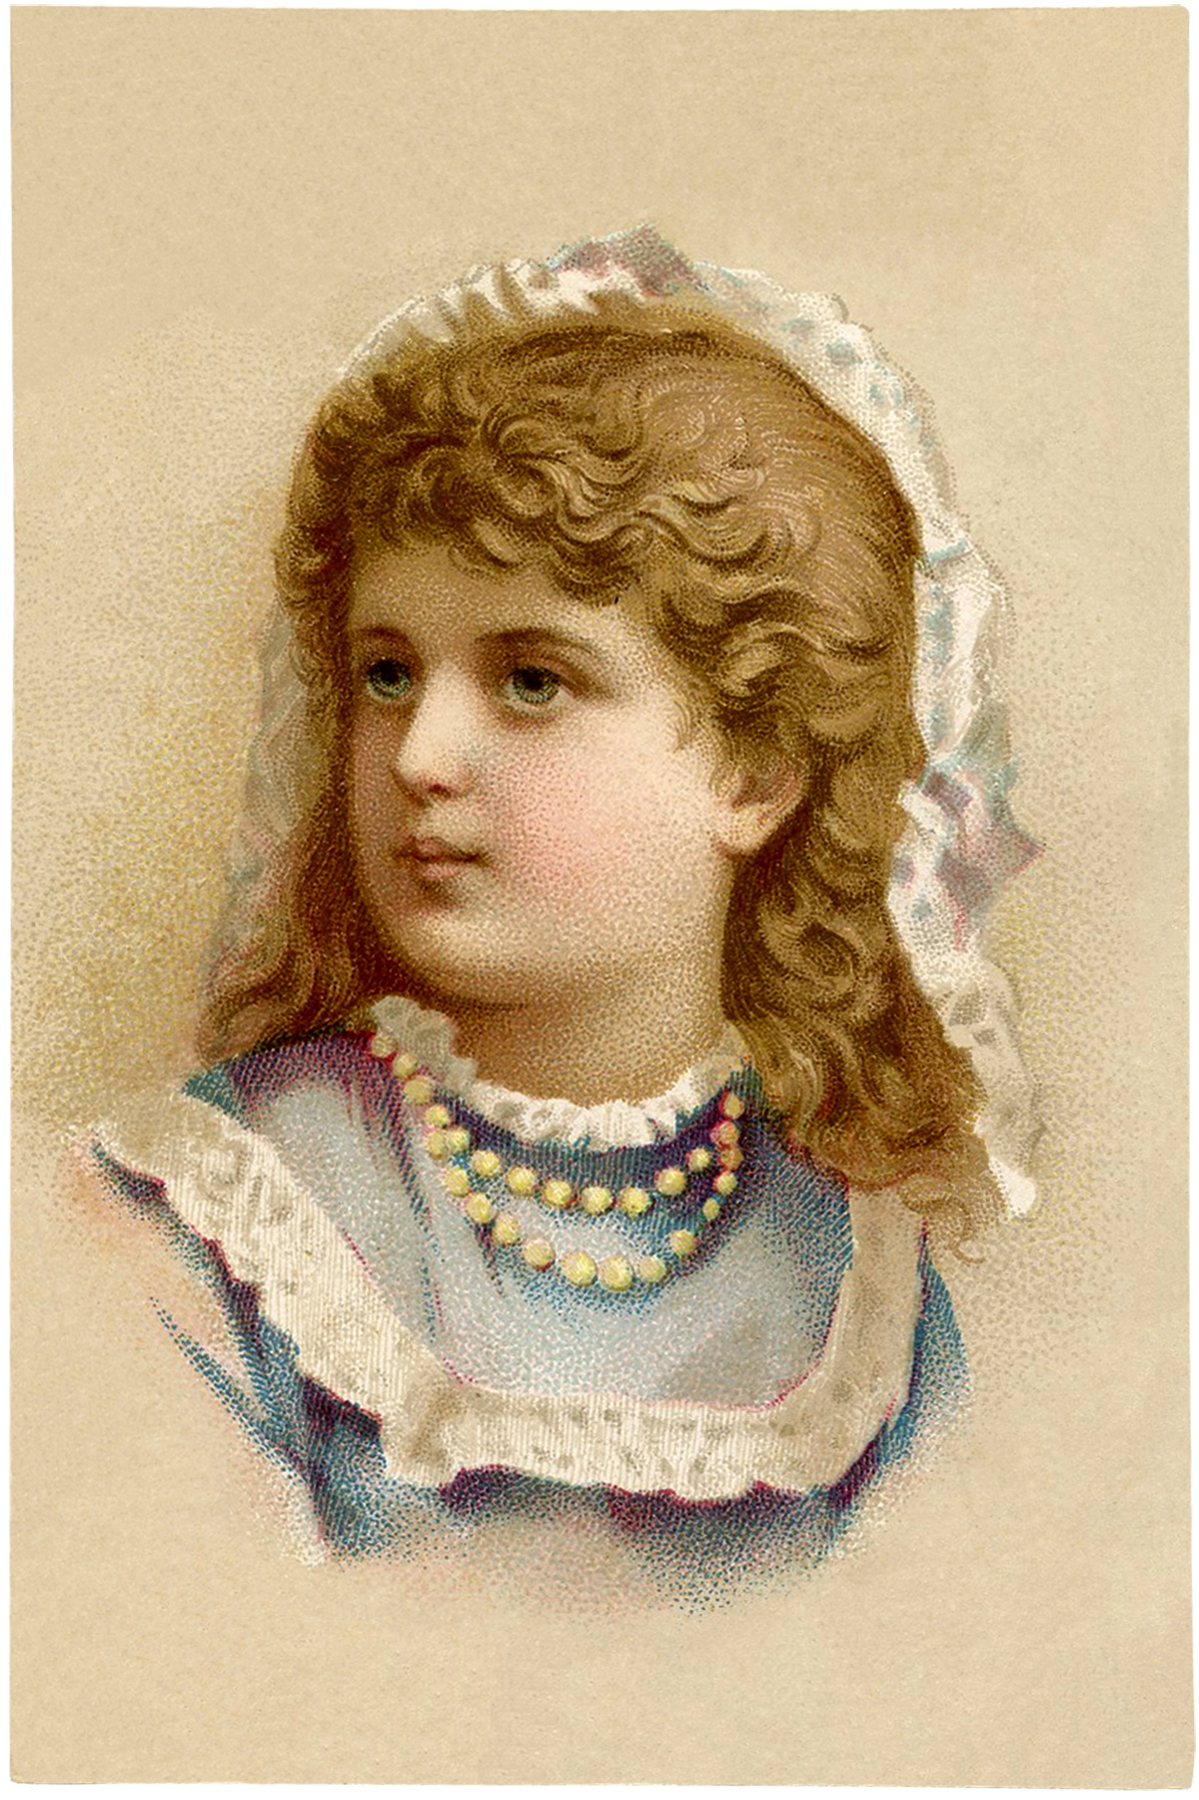 Vintage Girl with Pearls